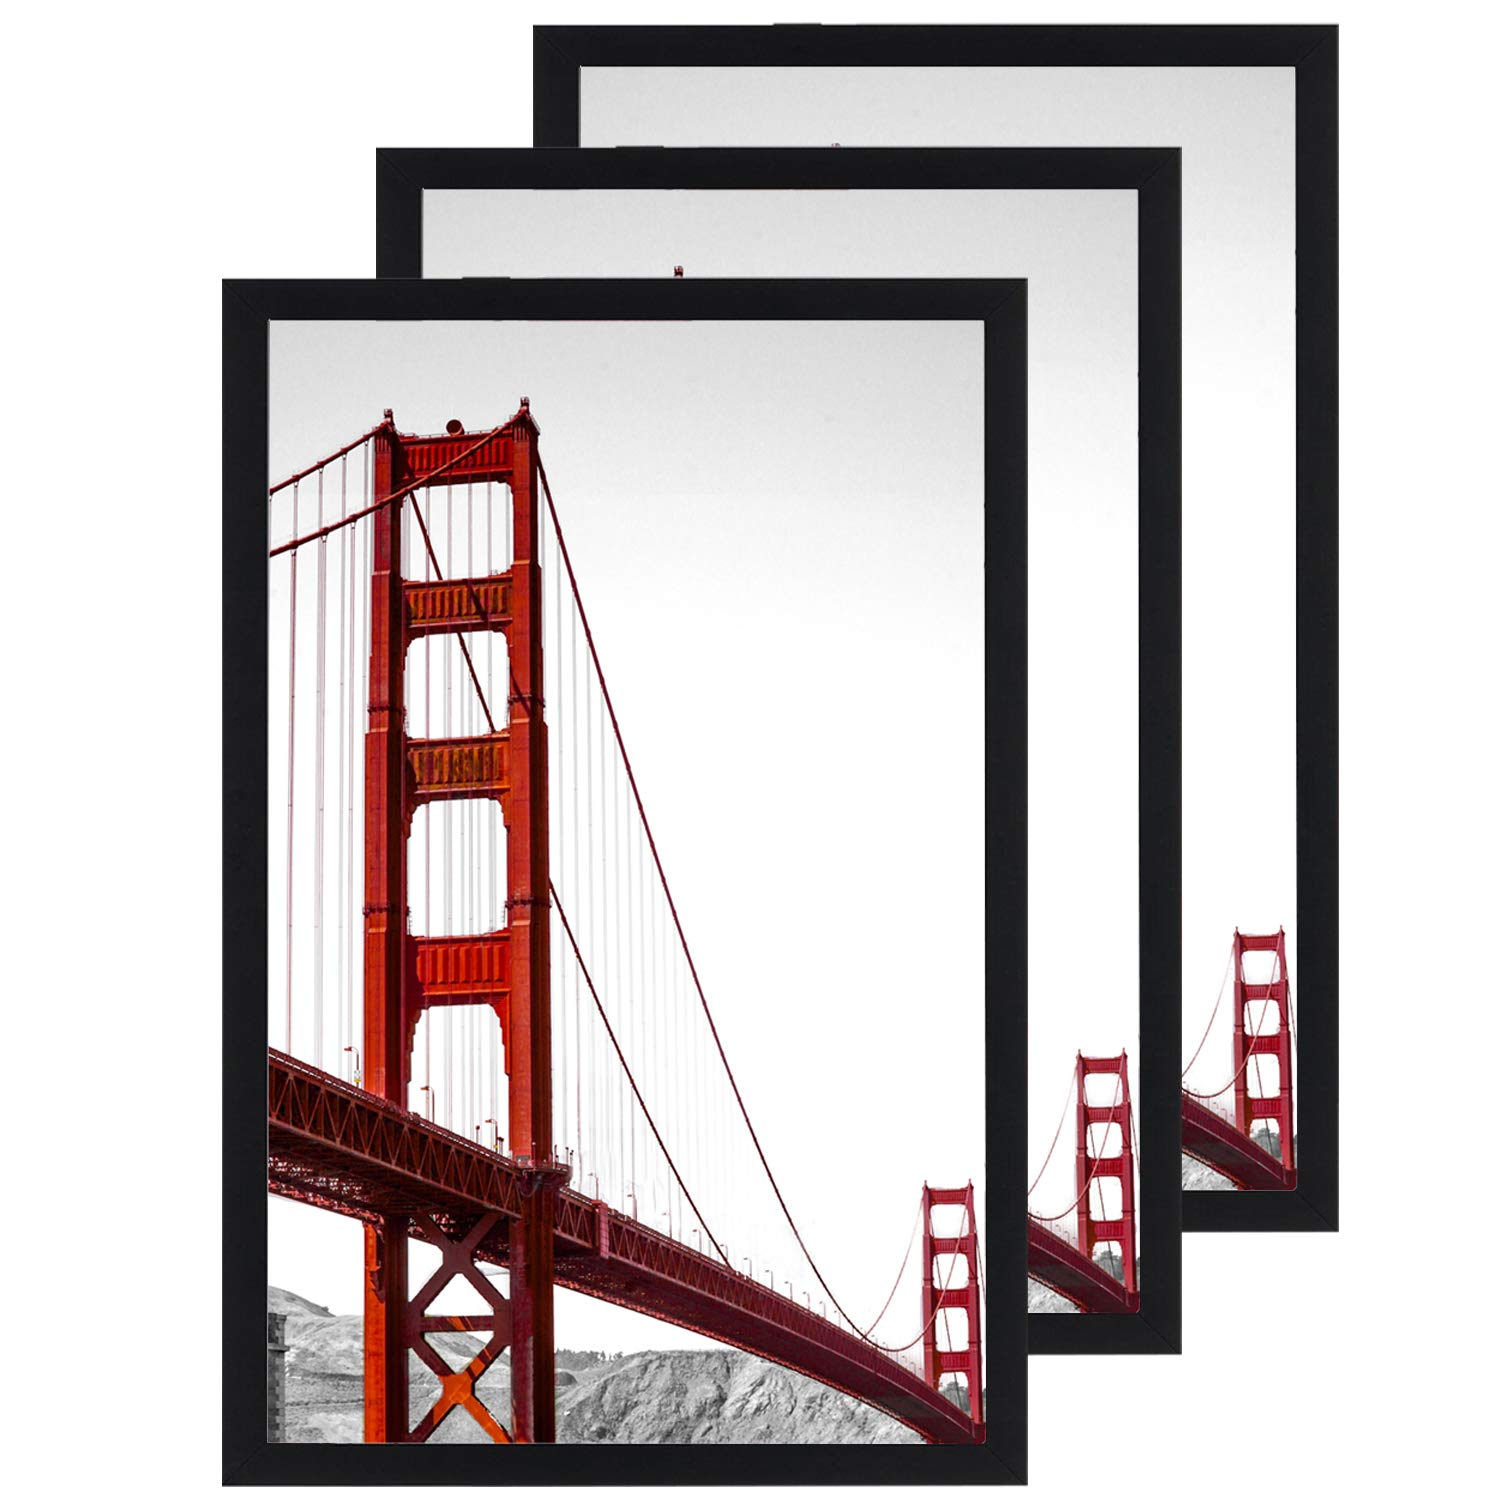 11x17 Frame Black 3 Pack, Solid Wood Picture Frame with Plexiglass, Poster Frame 11x17 (11 x 17 Frame,3 Pack)